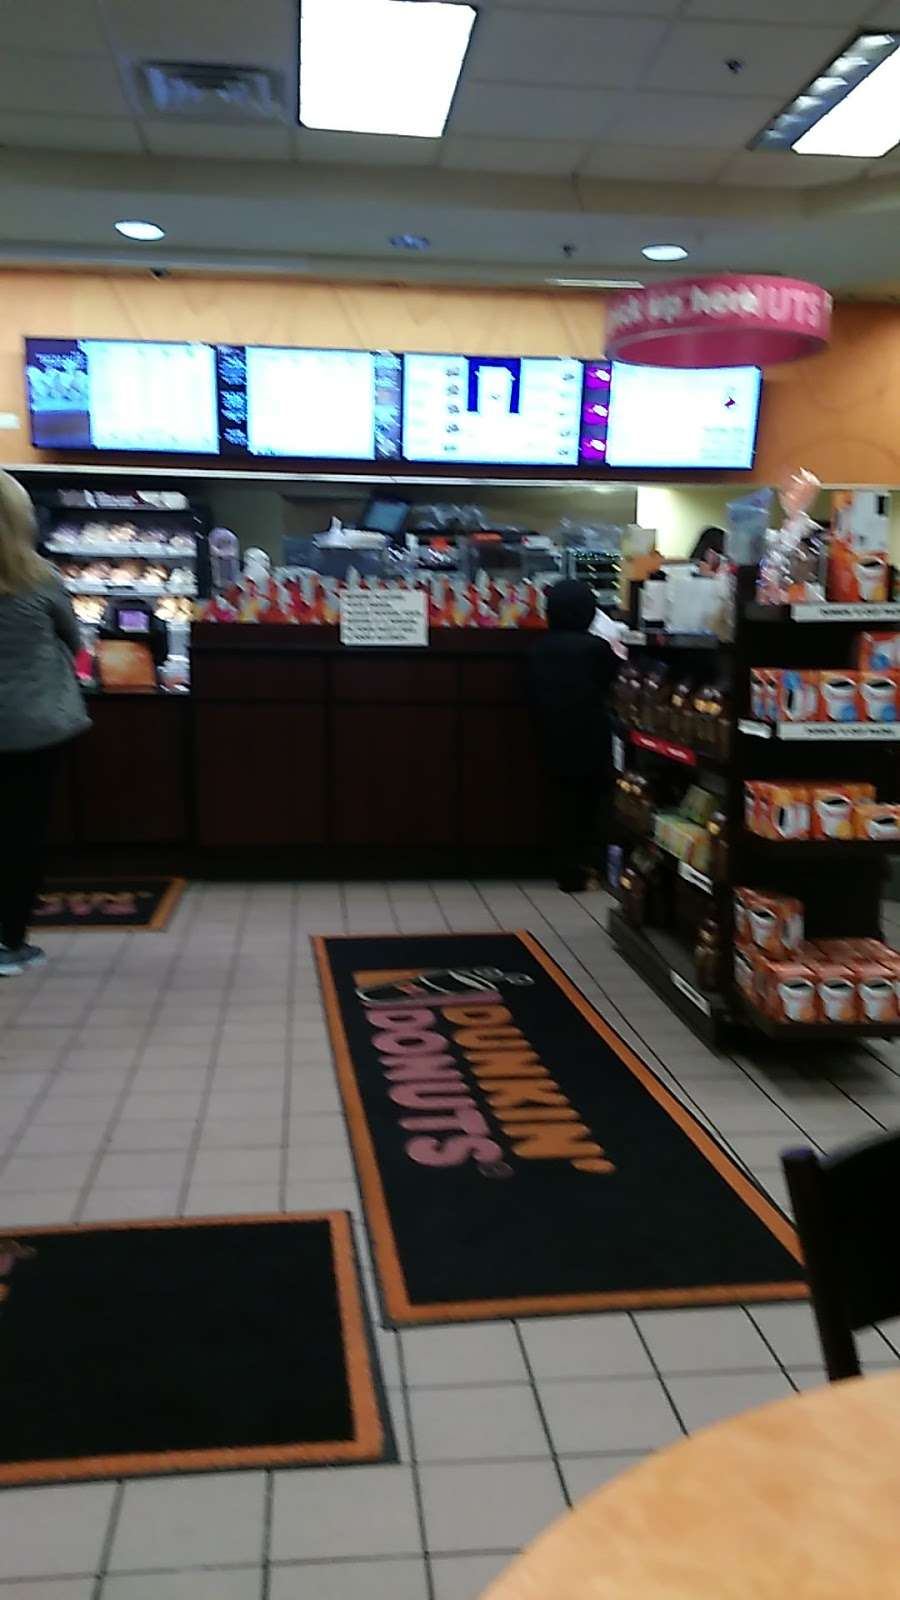 Dunkin Donuts - cafe  | Photo 10 of 10 | Address: 7247 Kingery Hwy, Hinsdale, IL 60521, USA | Phone: (630) 323-5205